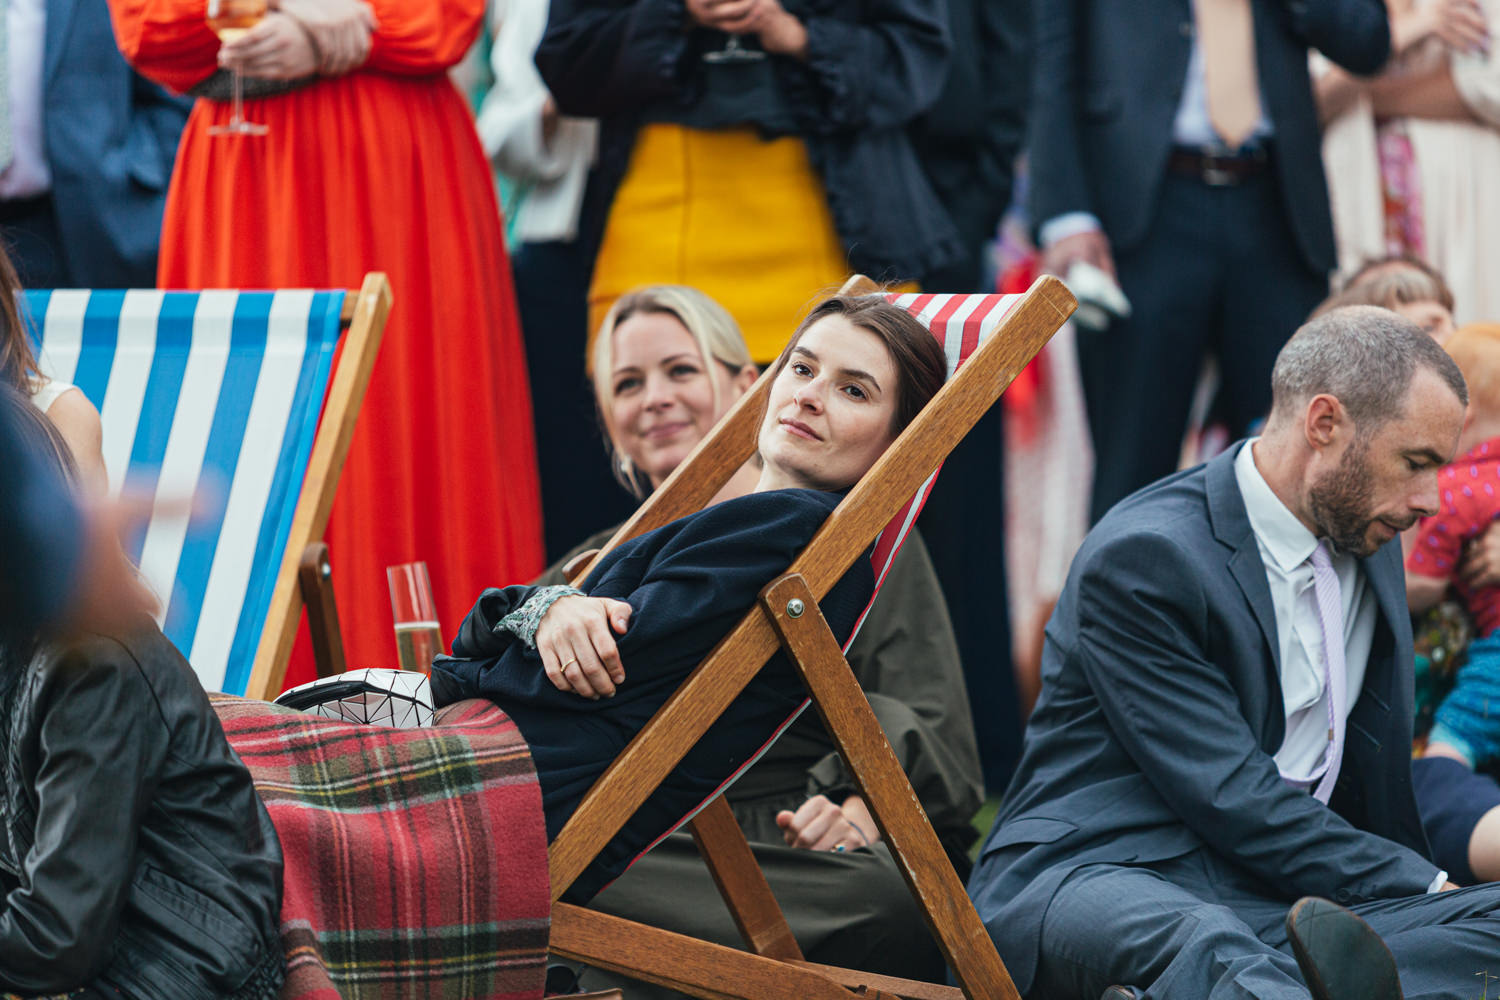 wedding guest sat on a deck chair, wedding speeches, champagne, wedding guests, sharpham house, sharpham gardens, sharpham gardens wedding photography, colourful clothing, deck chair, drinks, outdoor wedding reception